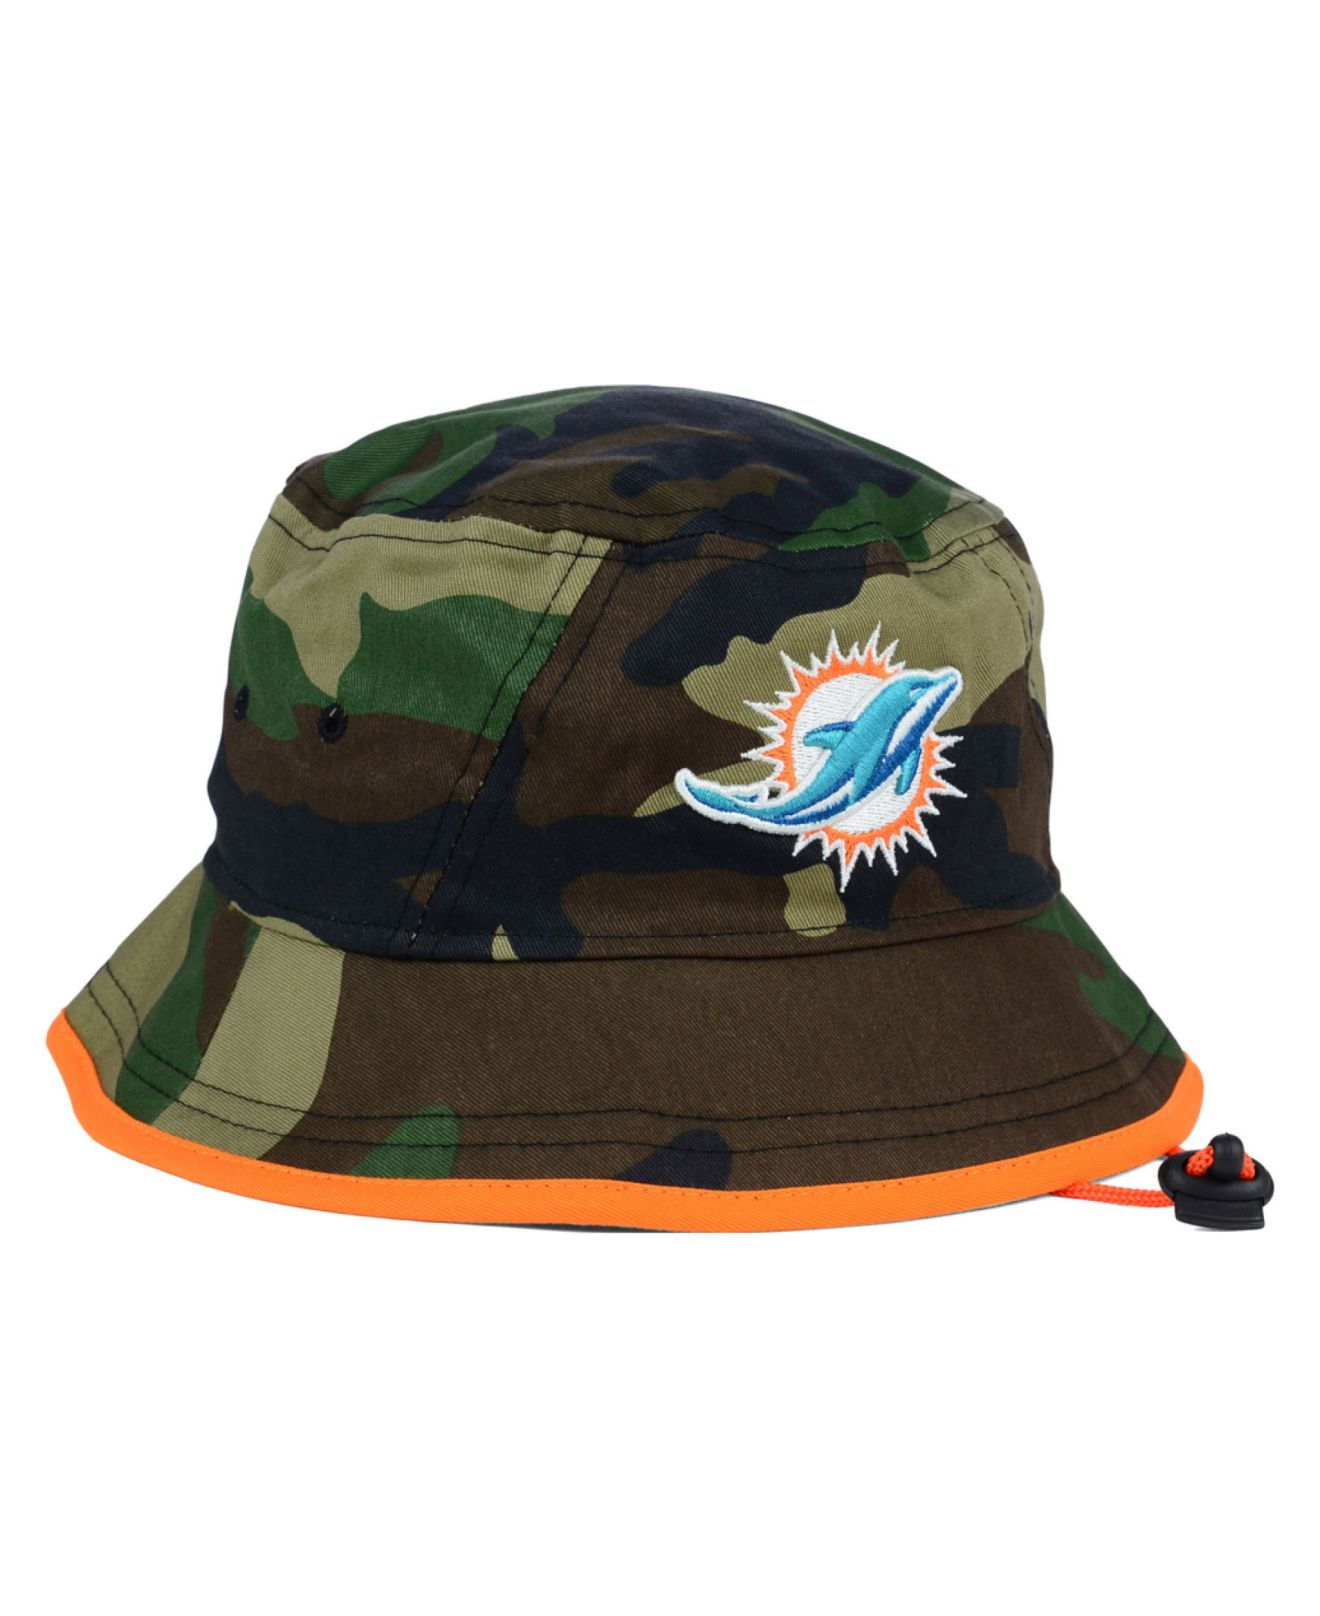 529d7ed2a40 closeout miami dolphins camo bucket hat usa 0b2a6 57bcd